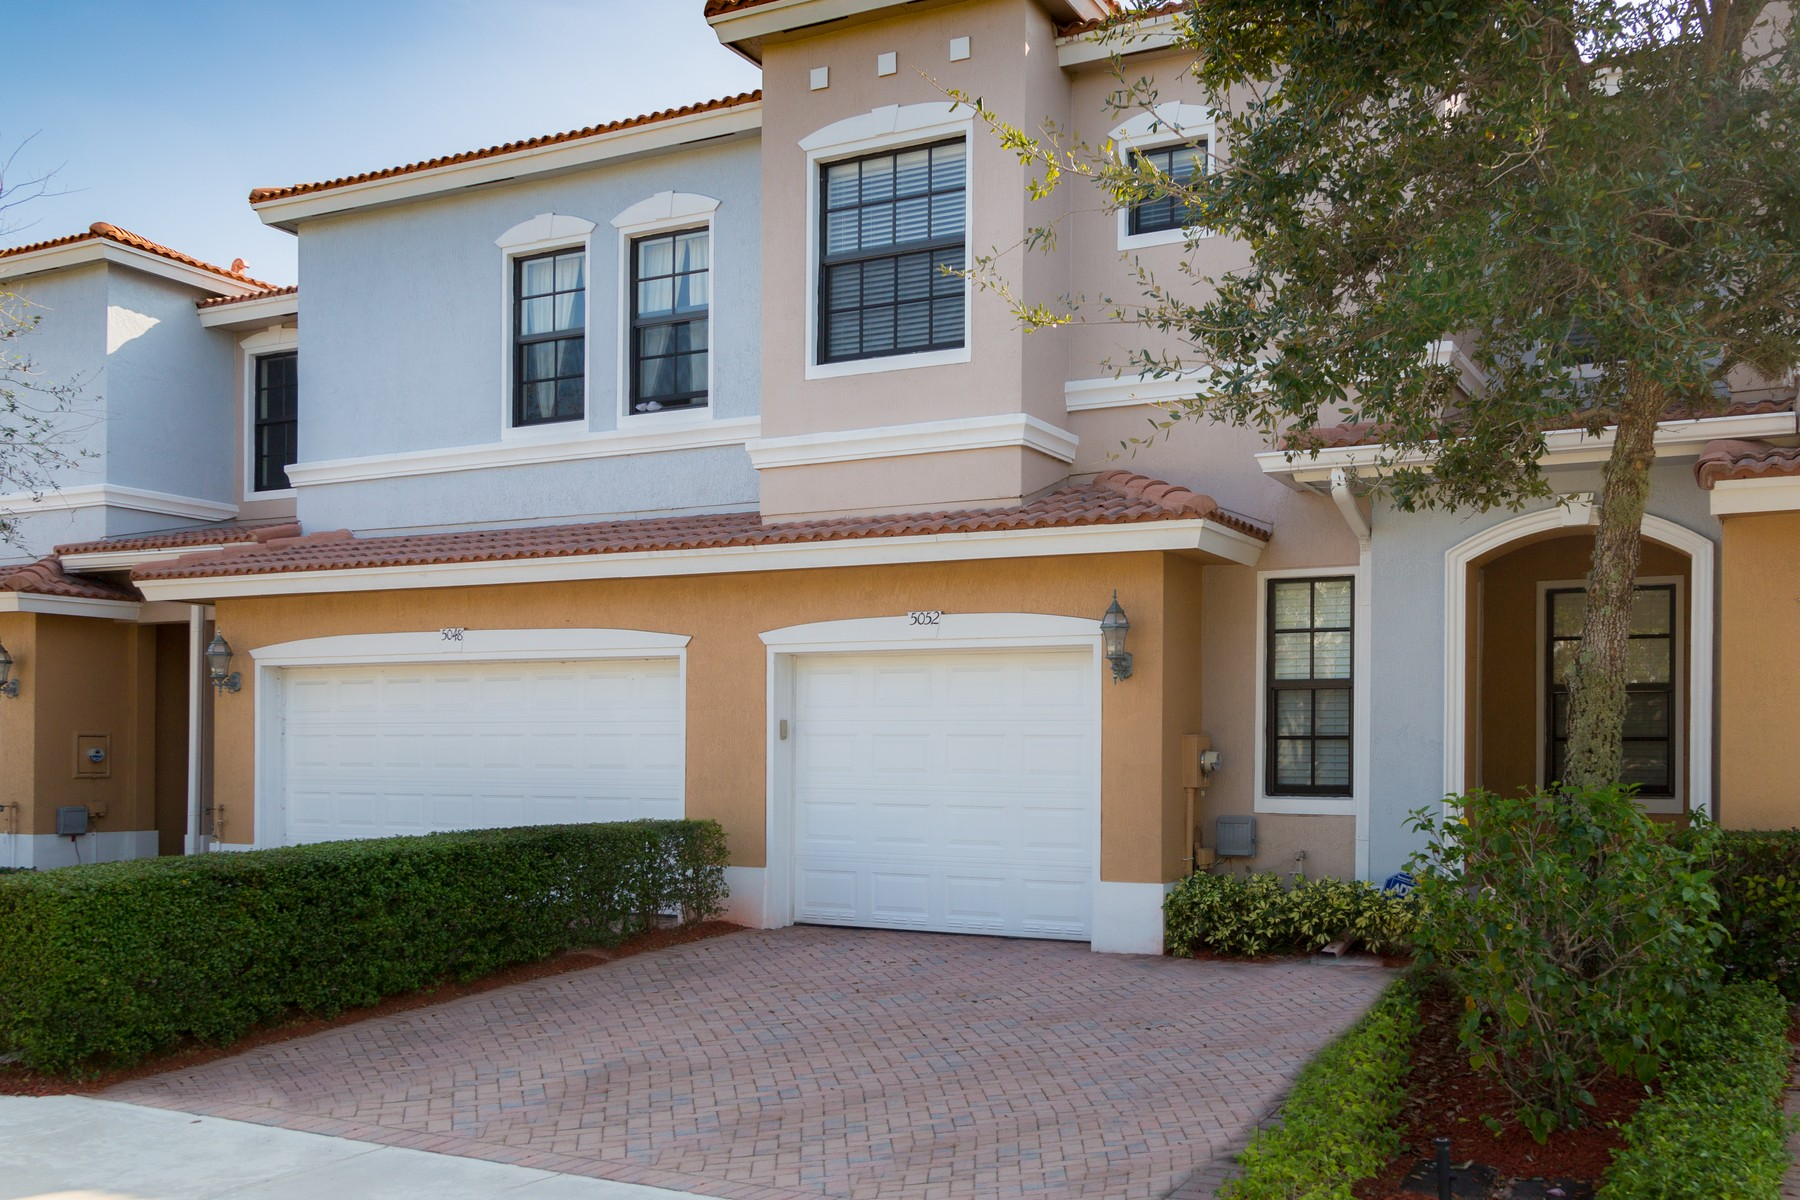 Townhouse for Sale at 5052 S Astor Cir , Delray Beach, FL 33484 Delray Beach, Florida, 33484 United States